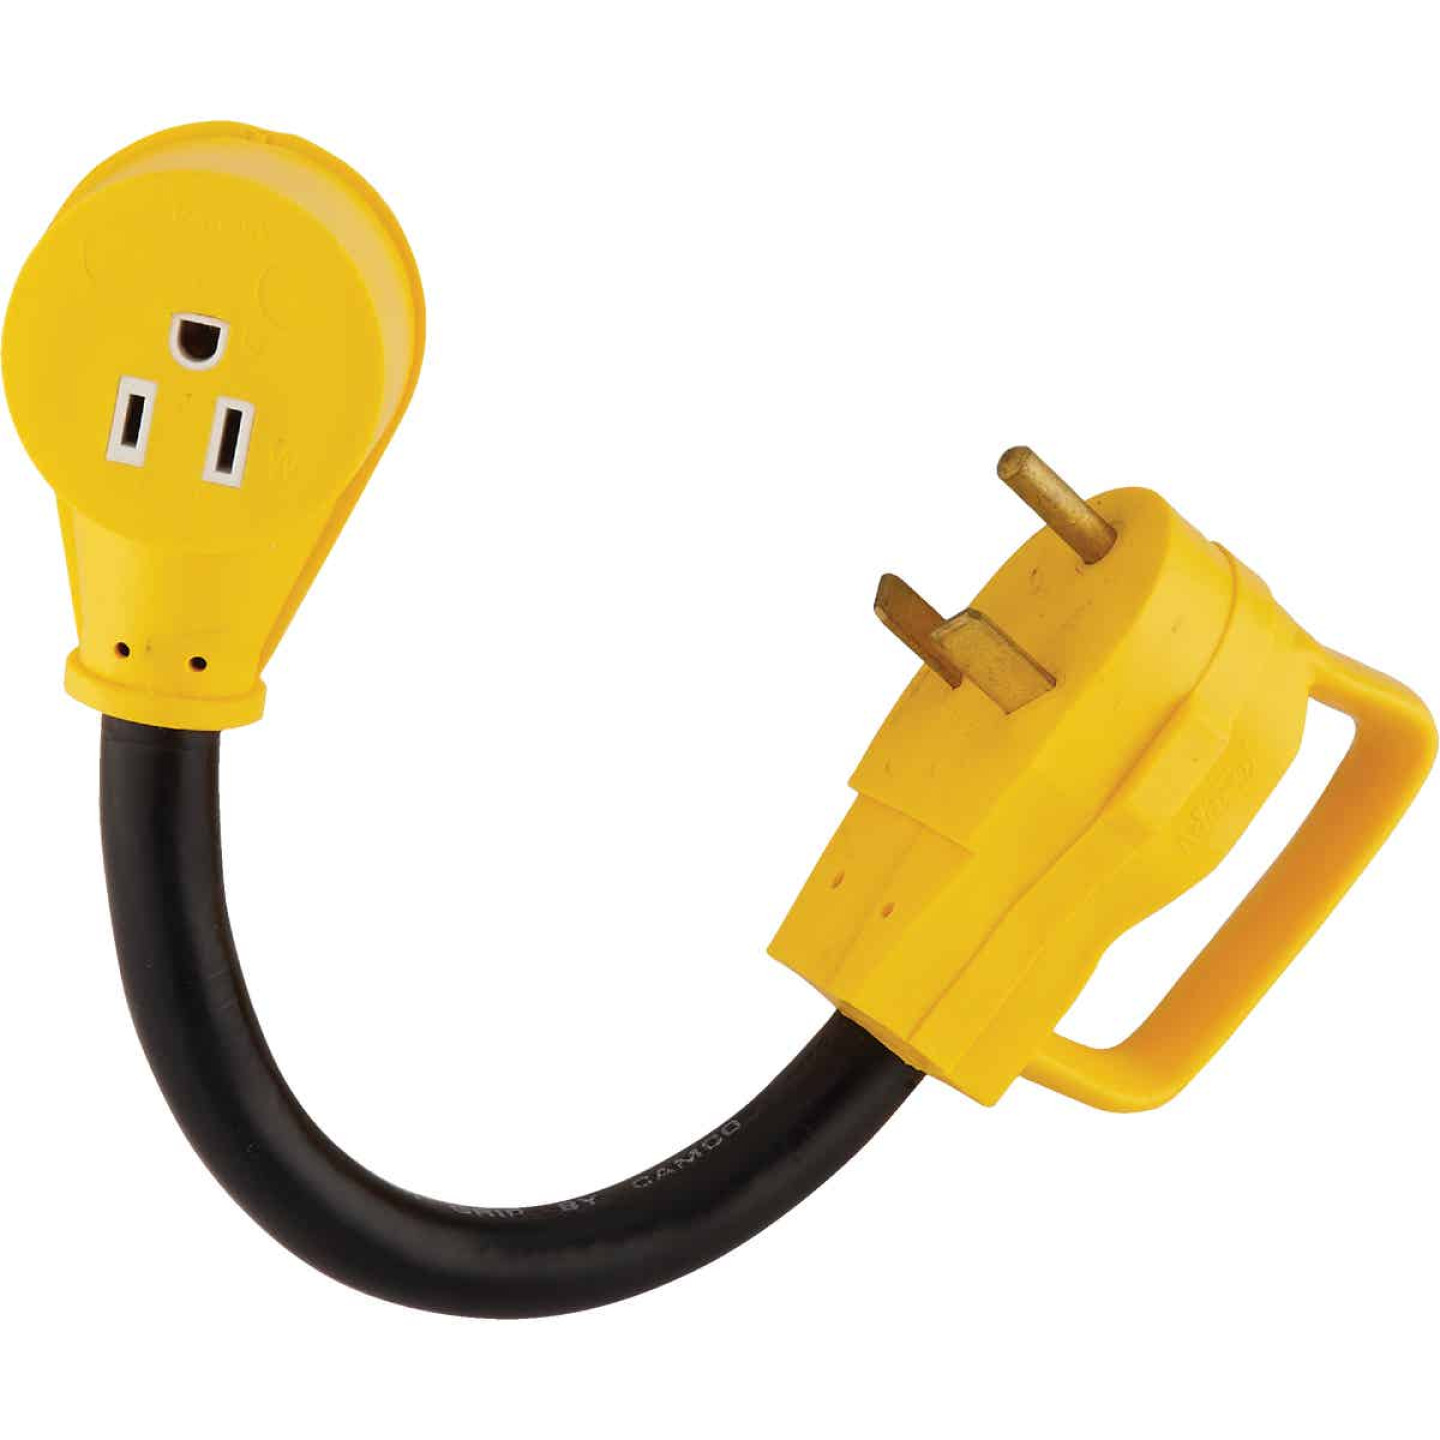 Camco PowerGrip 30A/15A Dogbone RV Power Cord Adapter Image 1